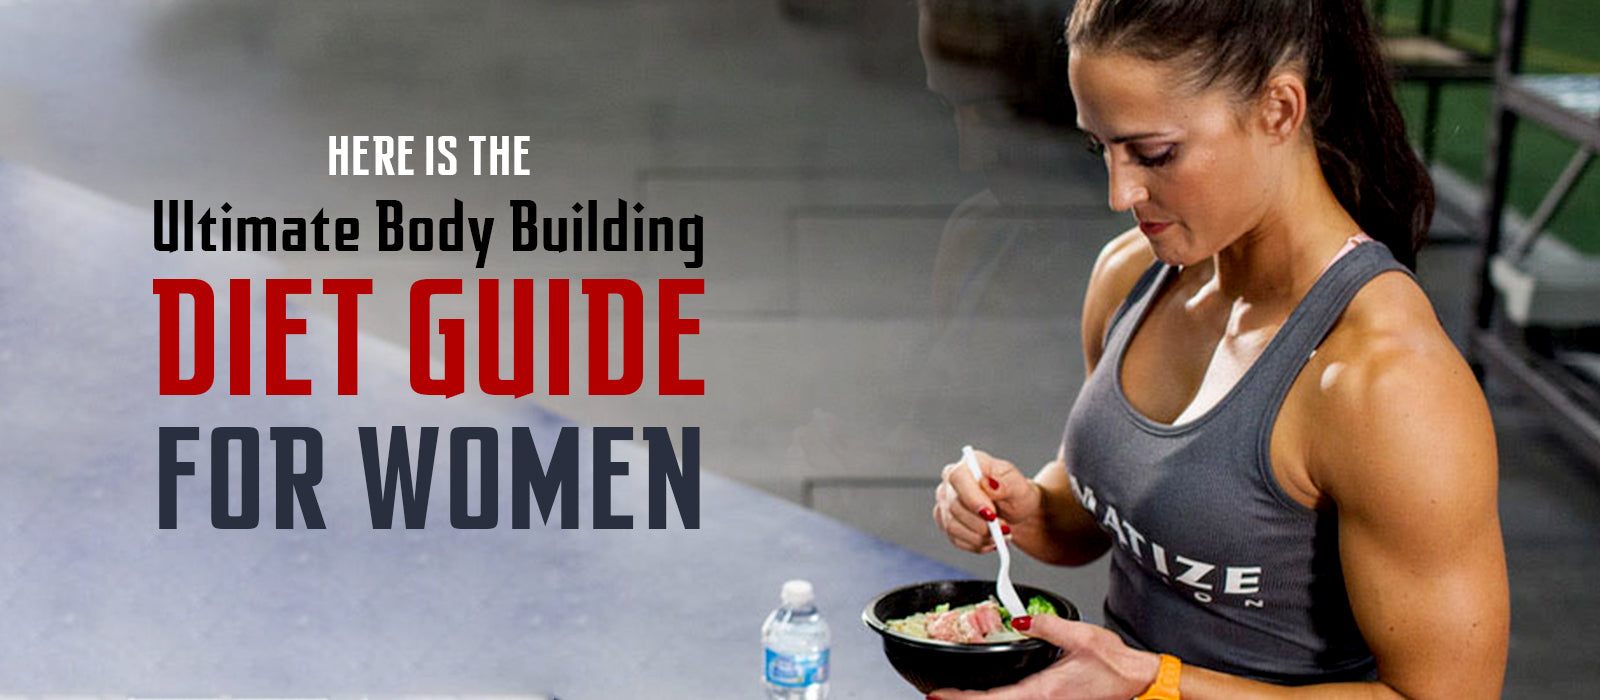 Here Is The Ultimate Body Building Diet Guide For Women